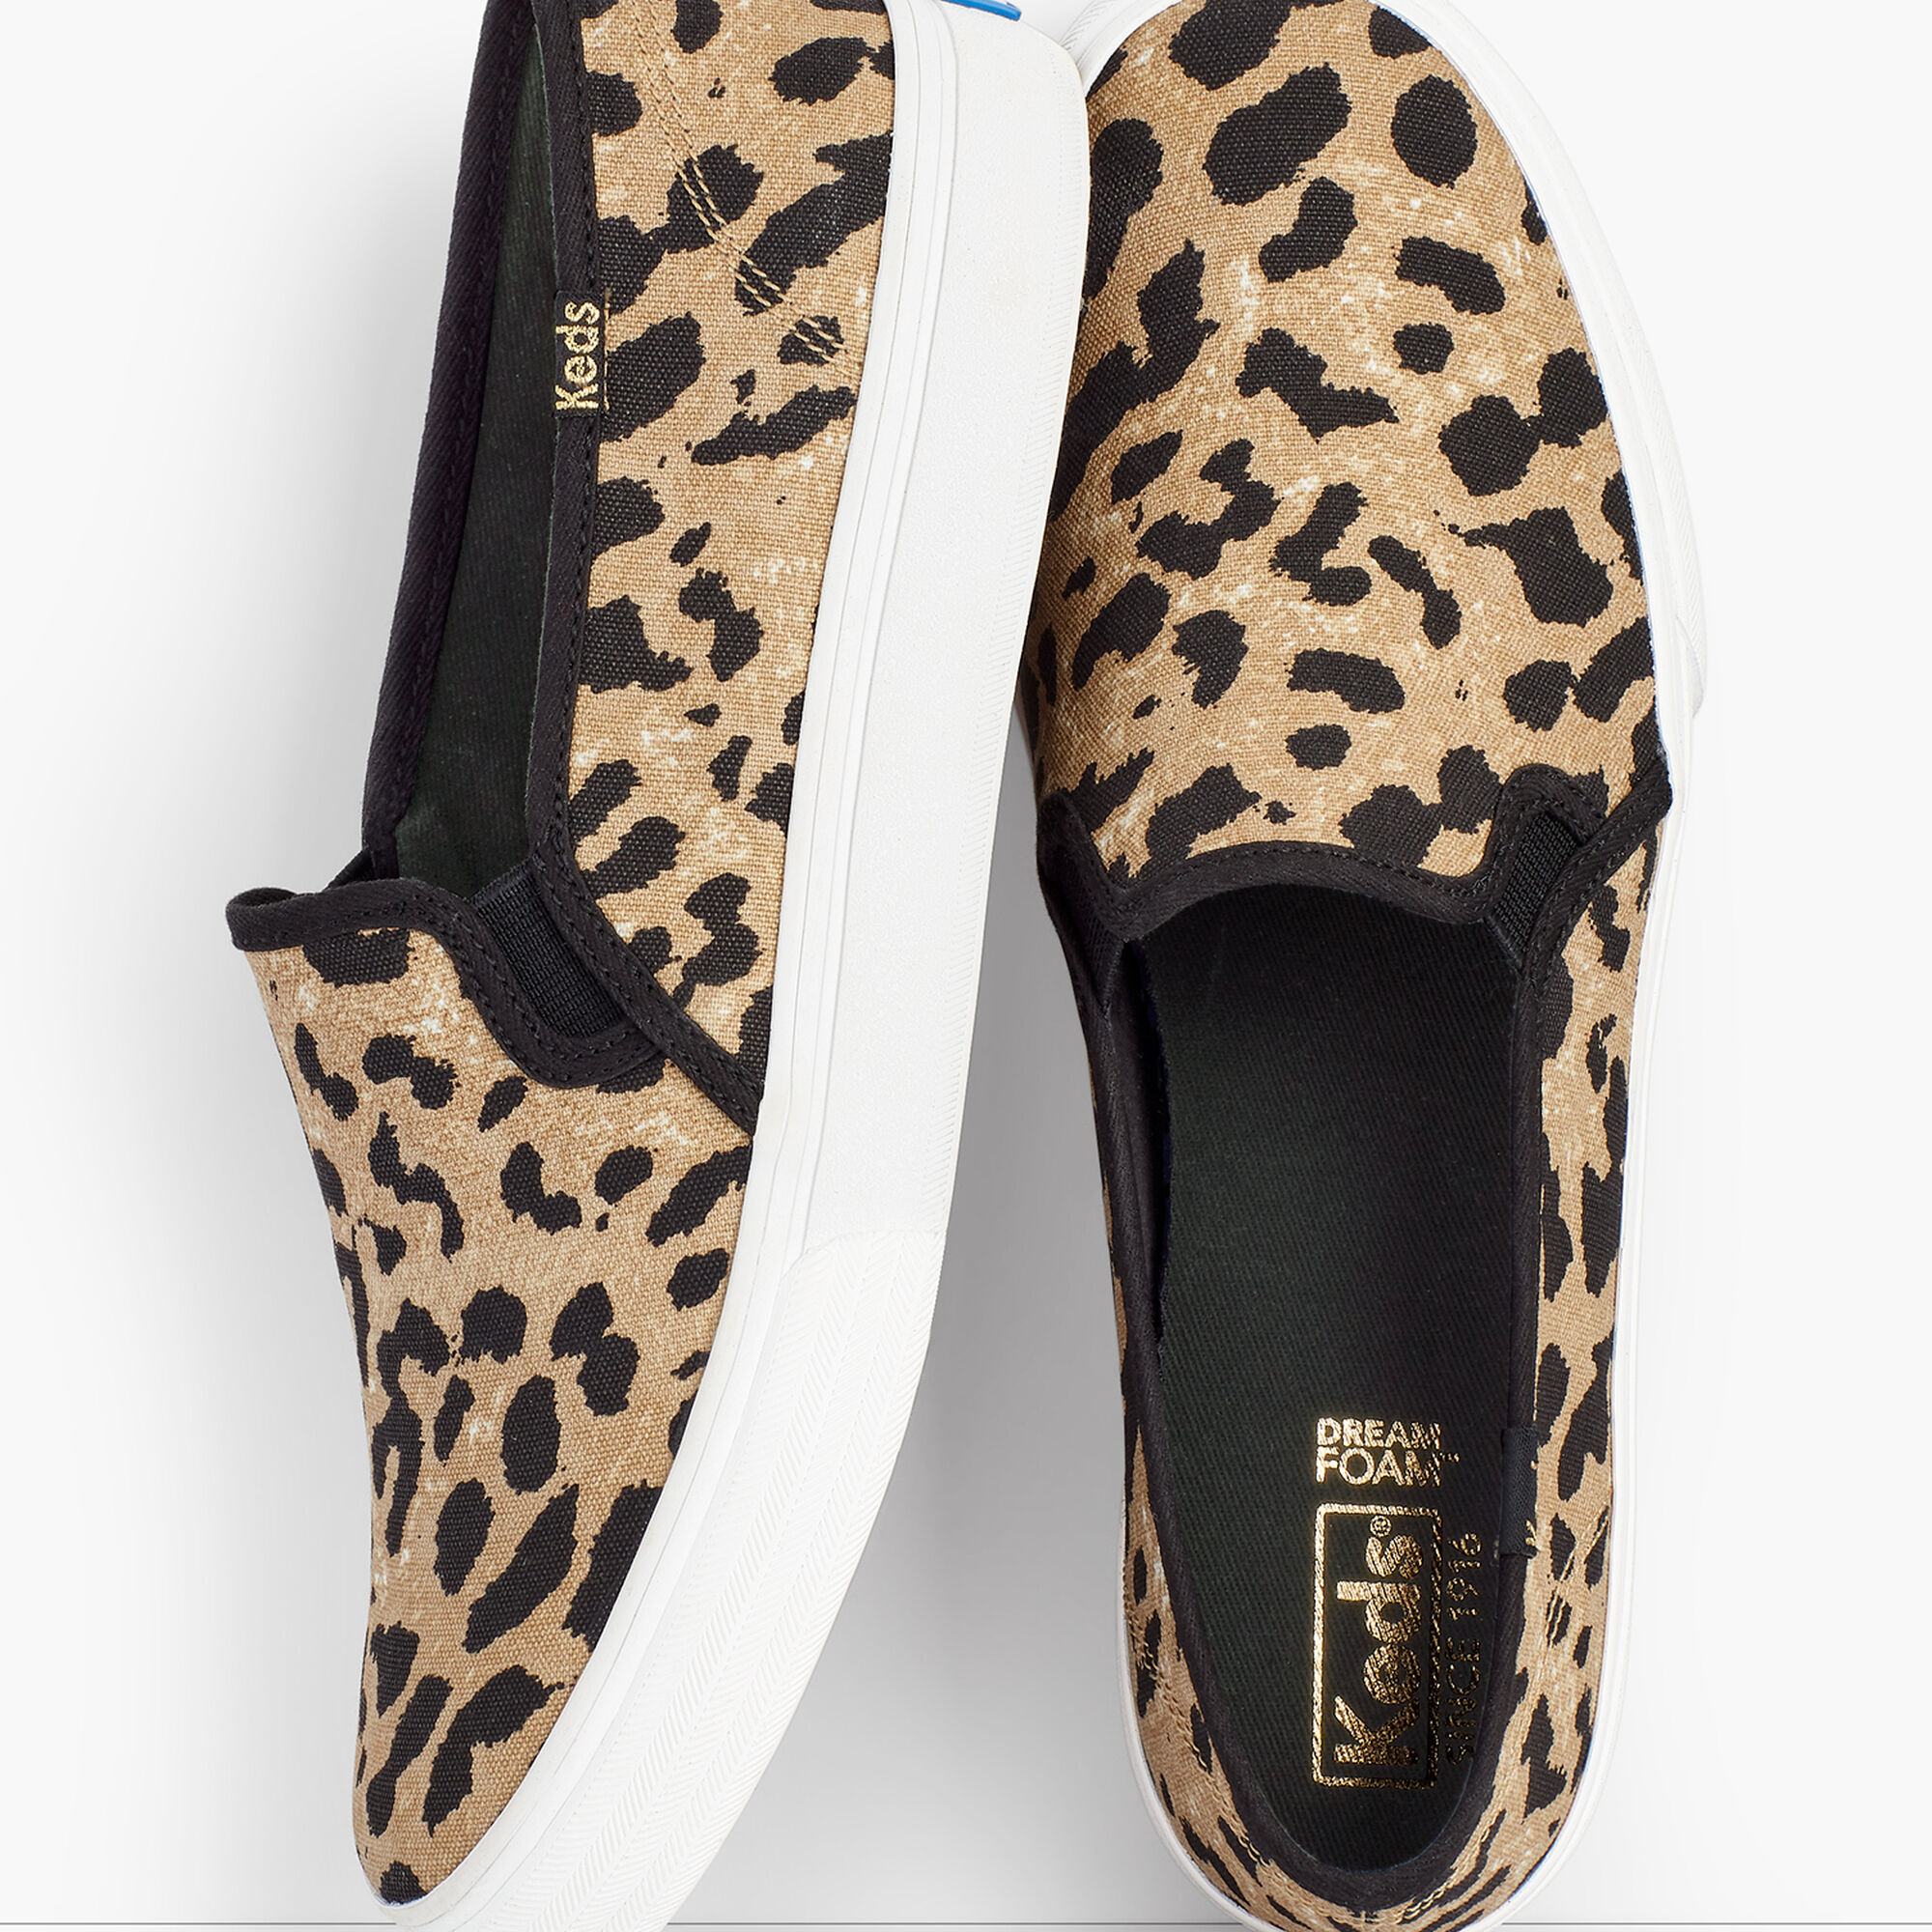 52d52efe5 ... Double Decker Leopard Canvas Slip-On Sneakers Opens a New Window.